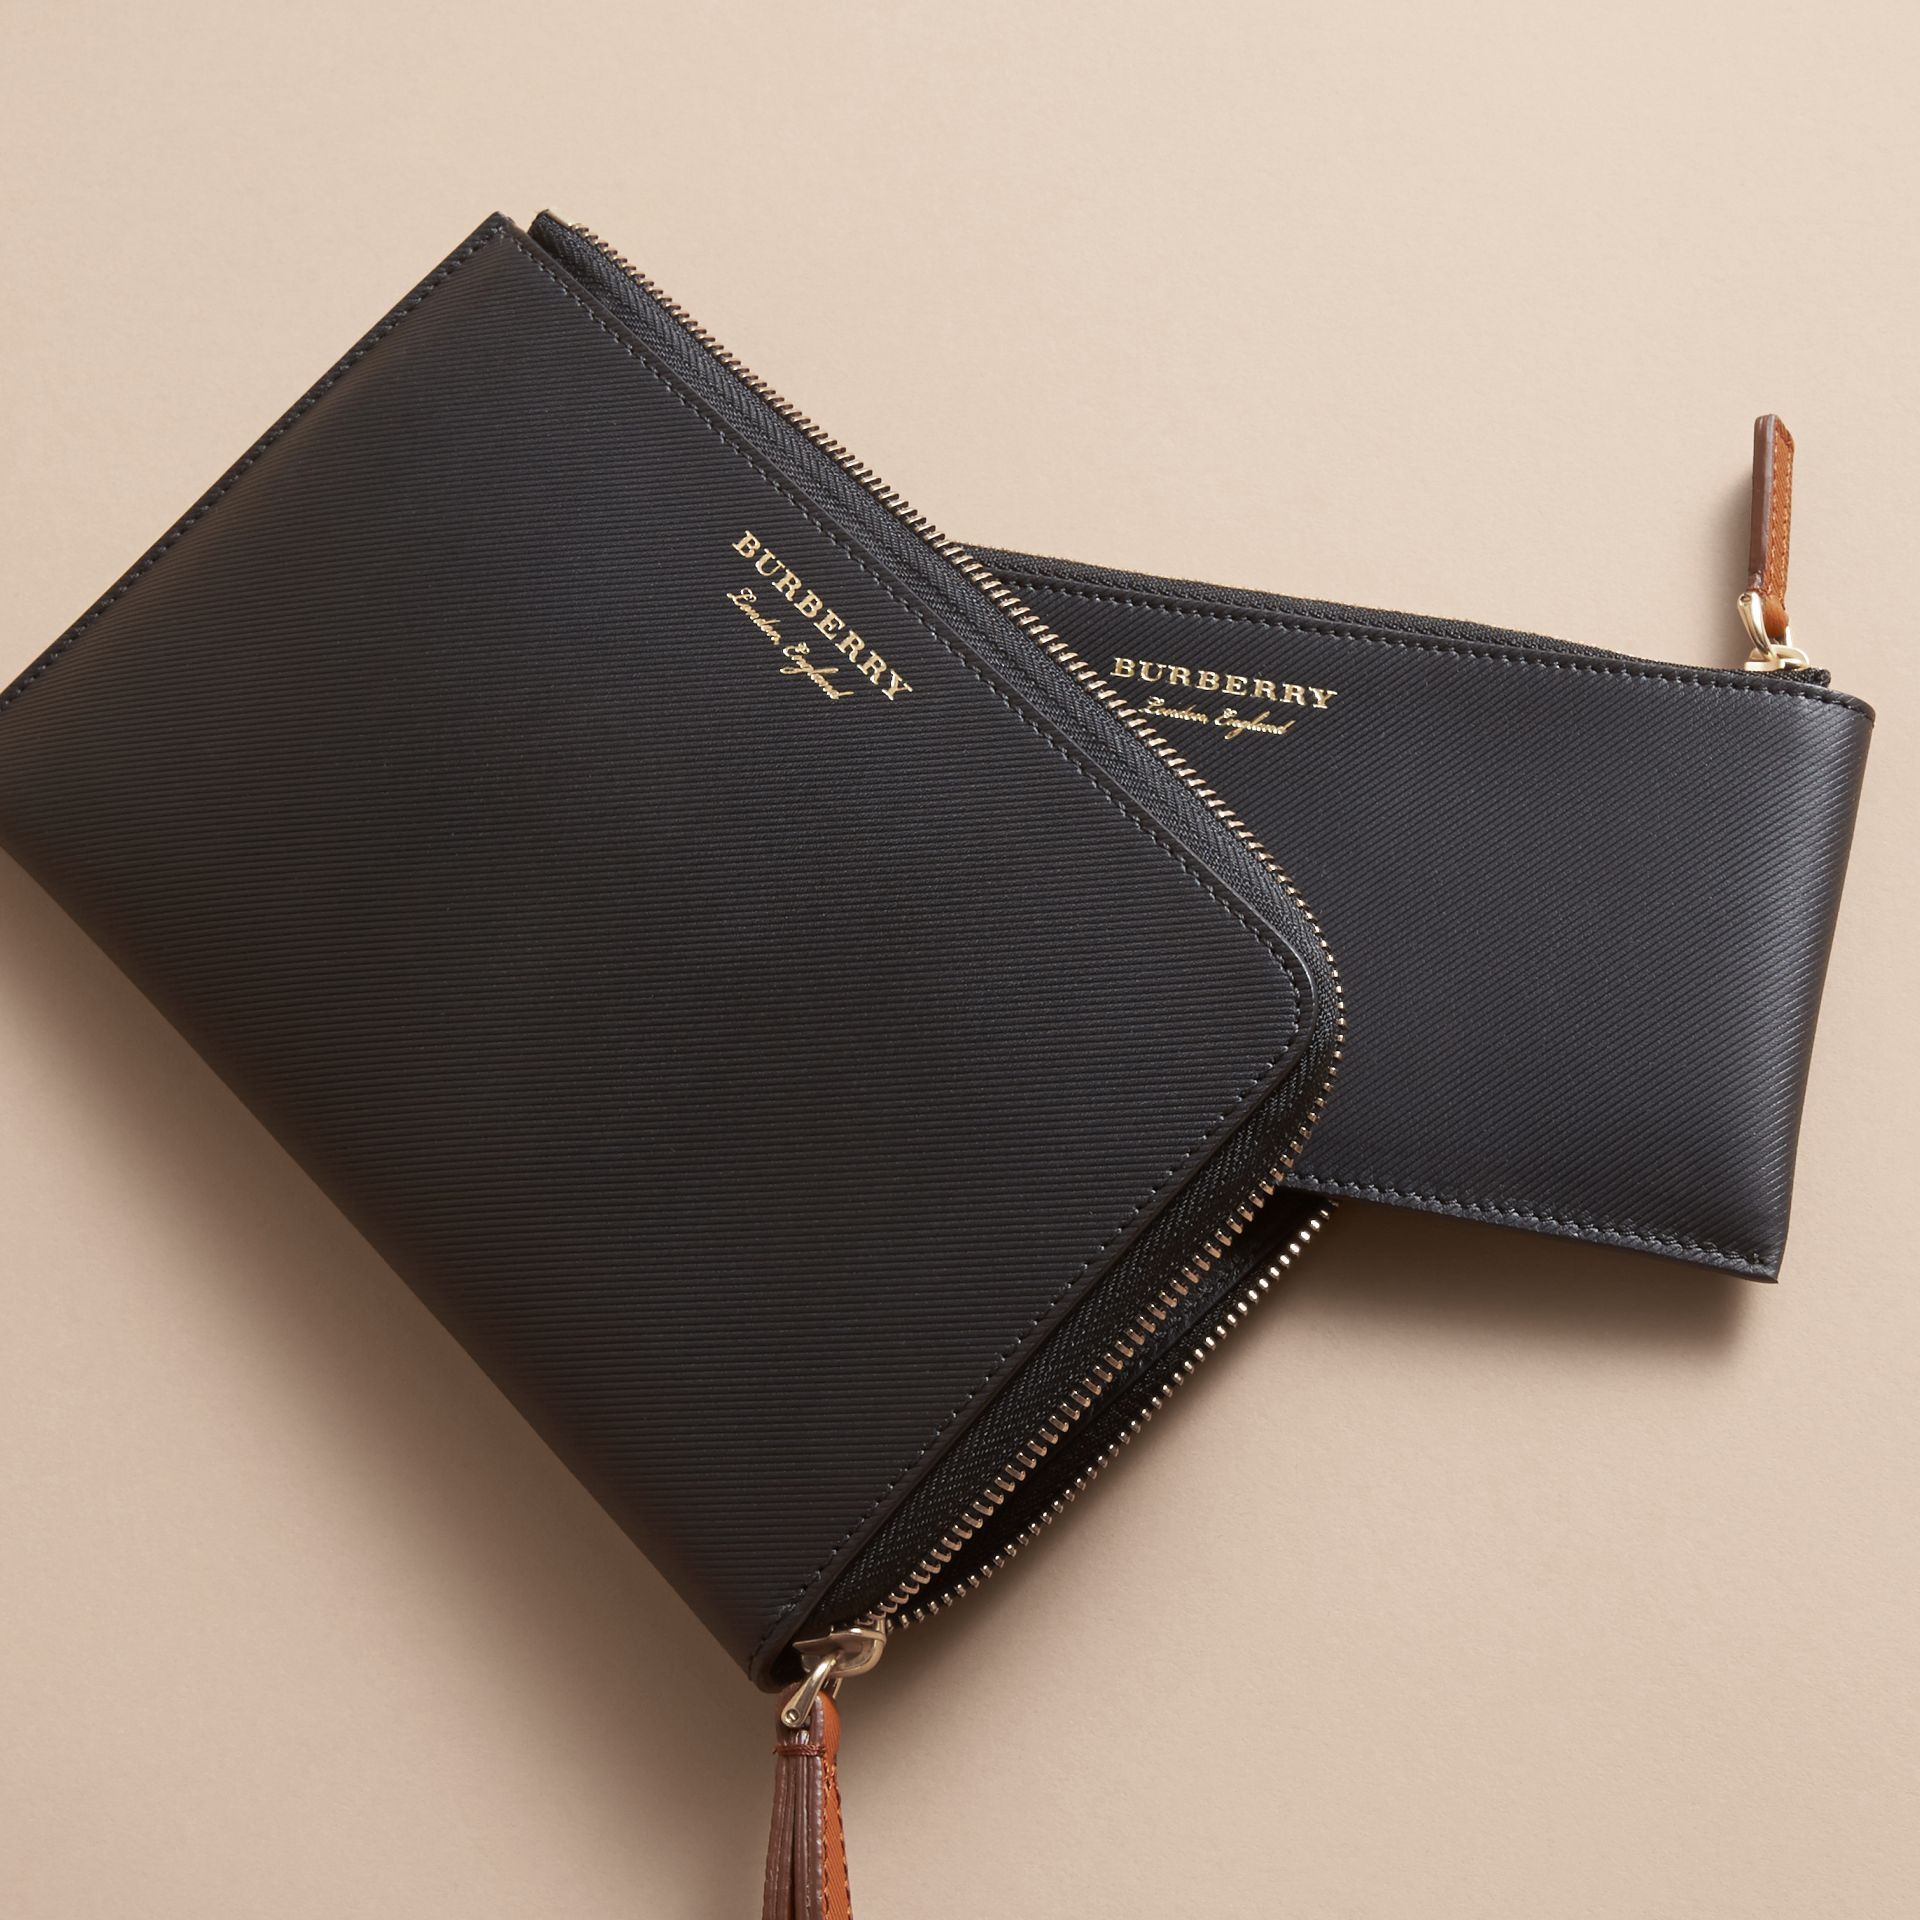 Two-tone Trench Leather Travel Wallet in Black - Men | Burberry Canada - gallery image 4